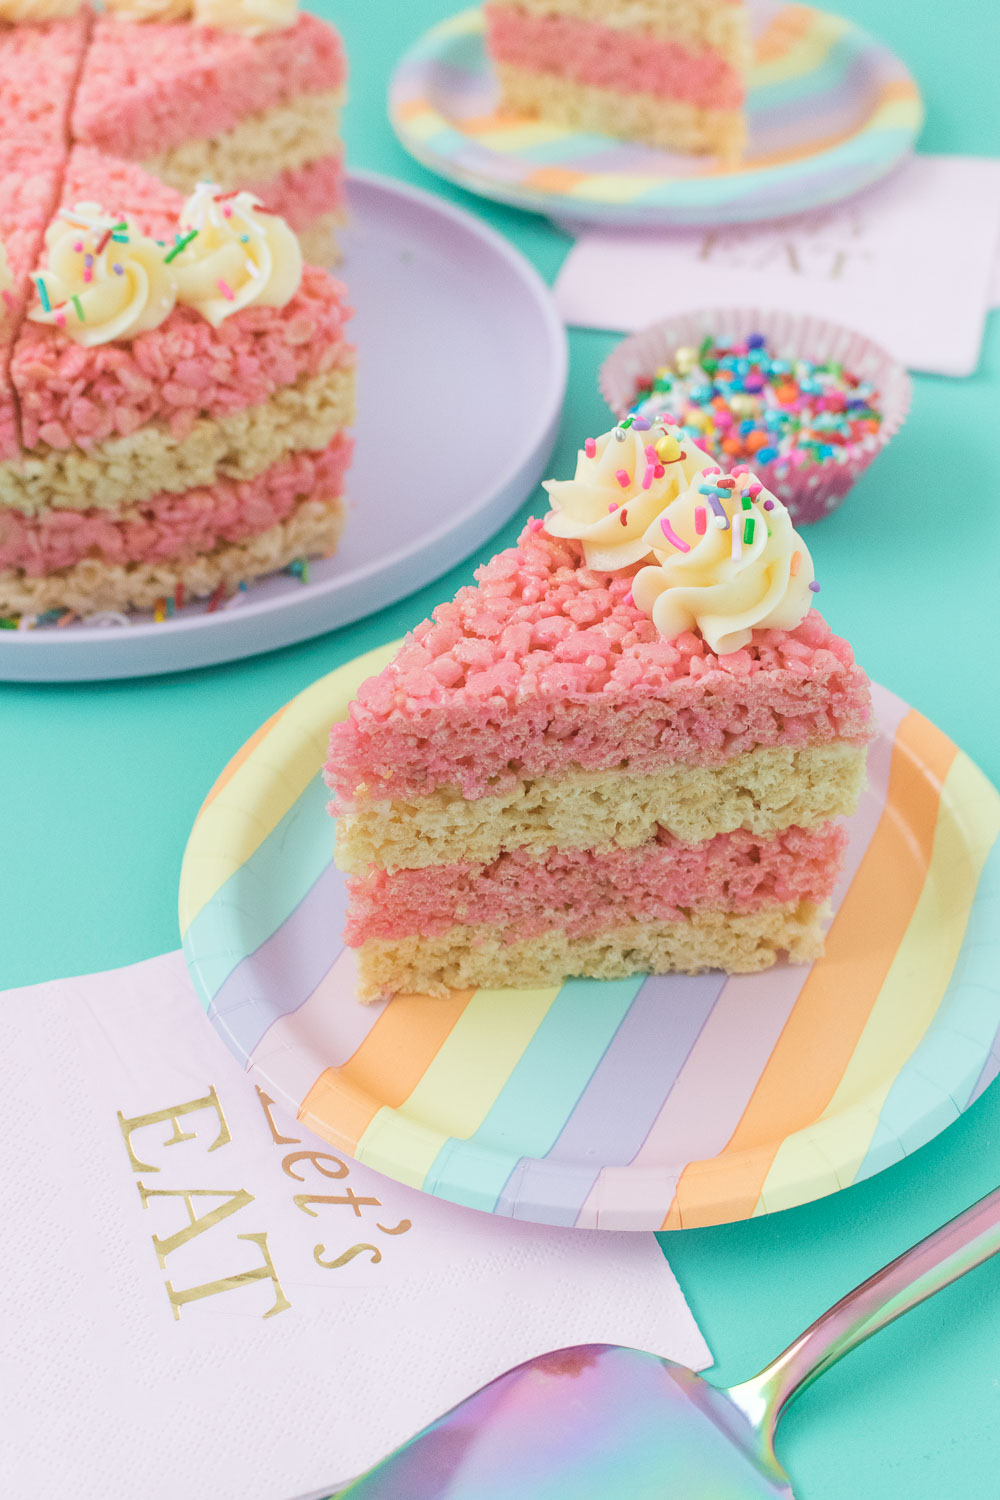 Cake Slice Rice Krispies Treats | Club Crafted